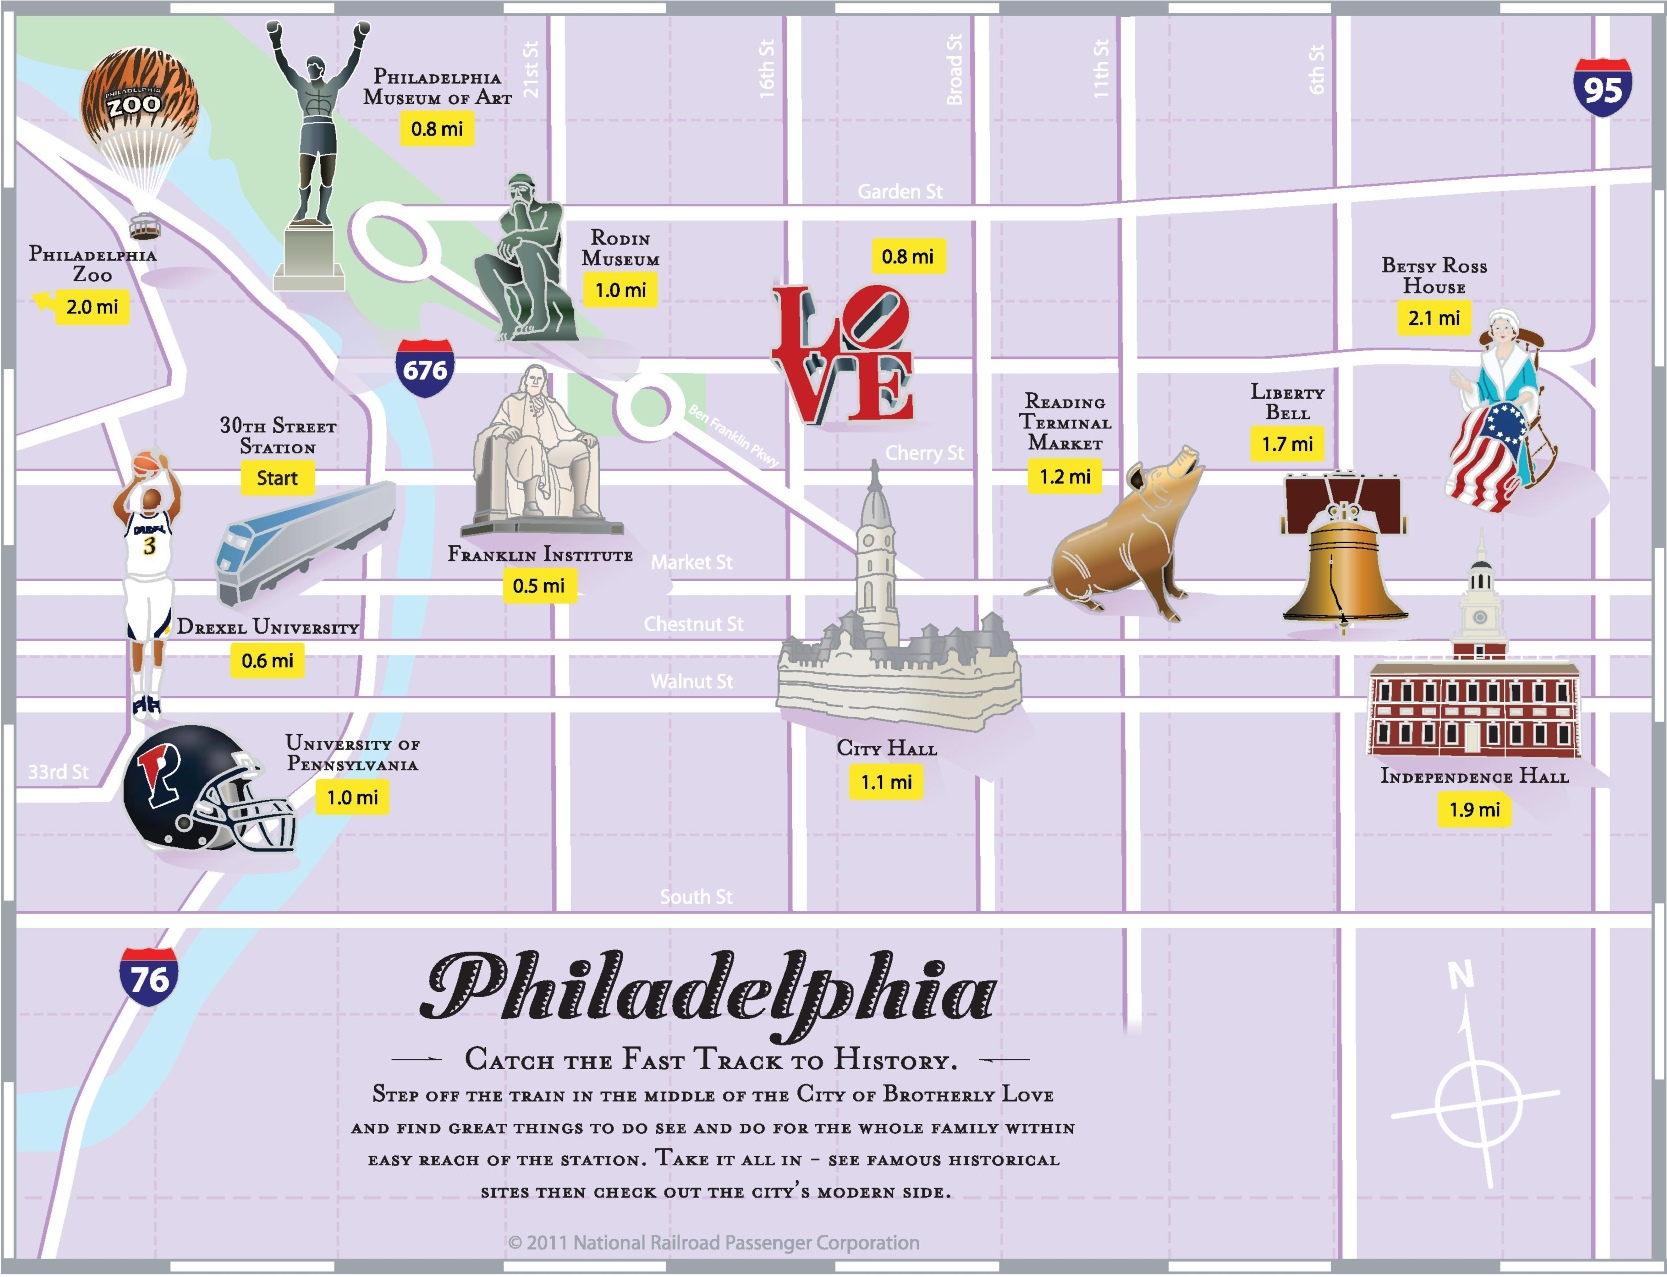 Philadelphia tourist attractions map – North Dakota Tourist Attractions Map